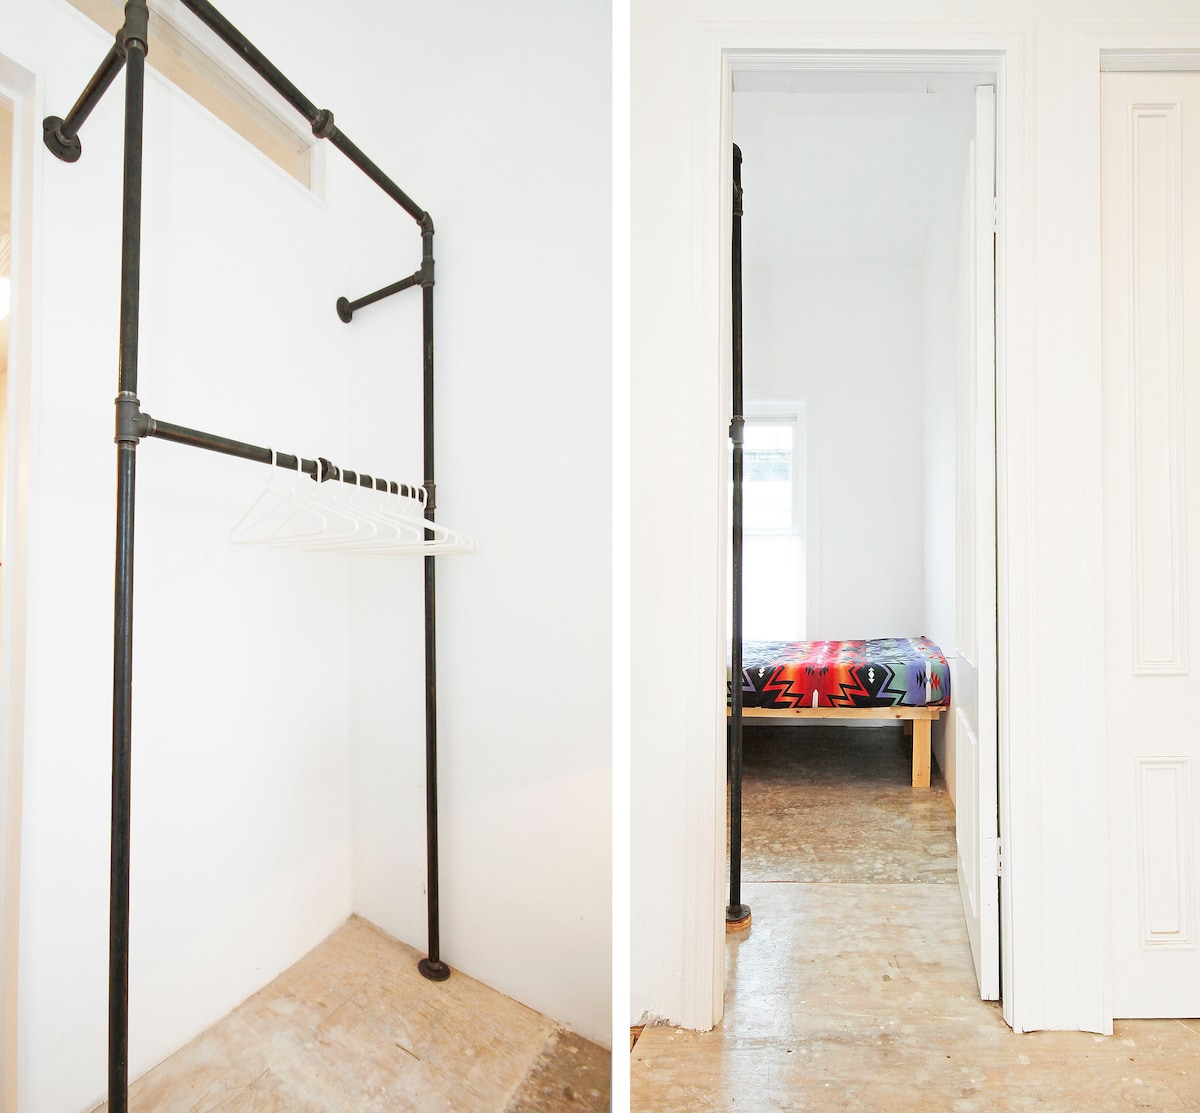 This is a split image. On the left is the double high clothes rail for your stuff, hangers included. On the right is the view into the room from the living room.